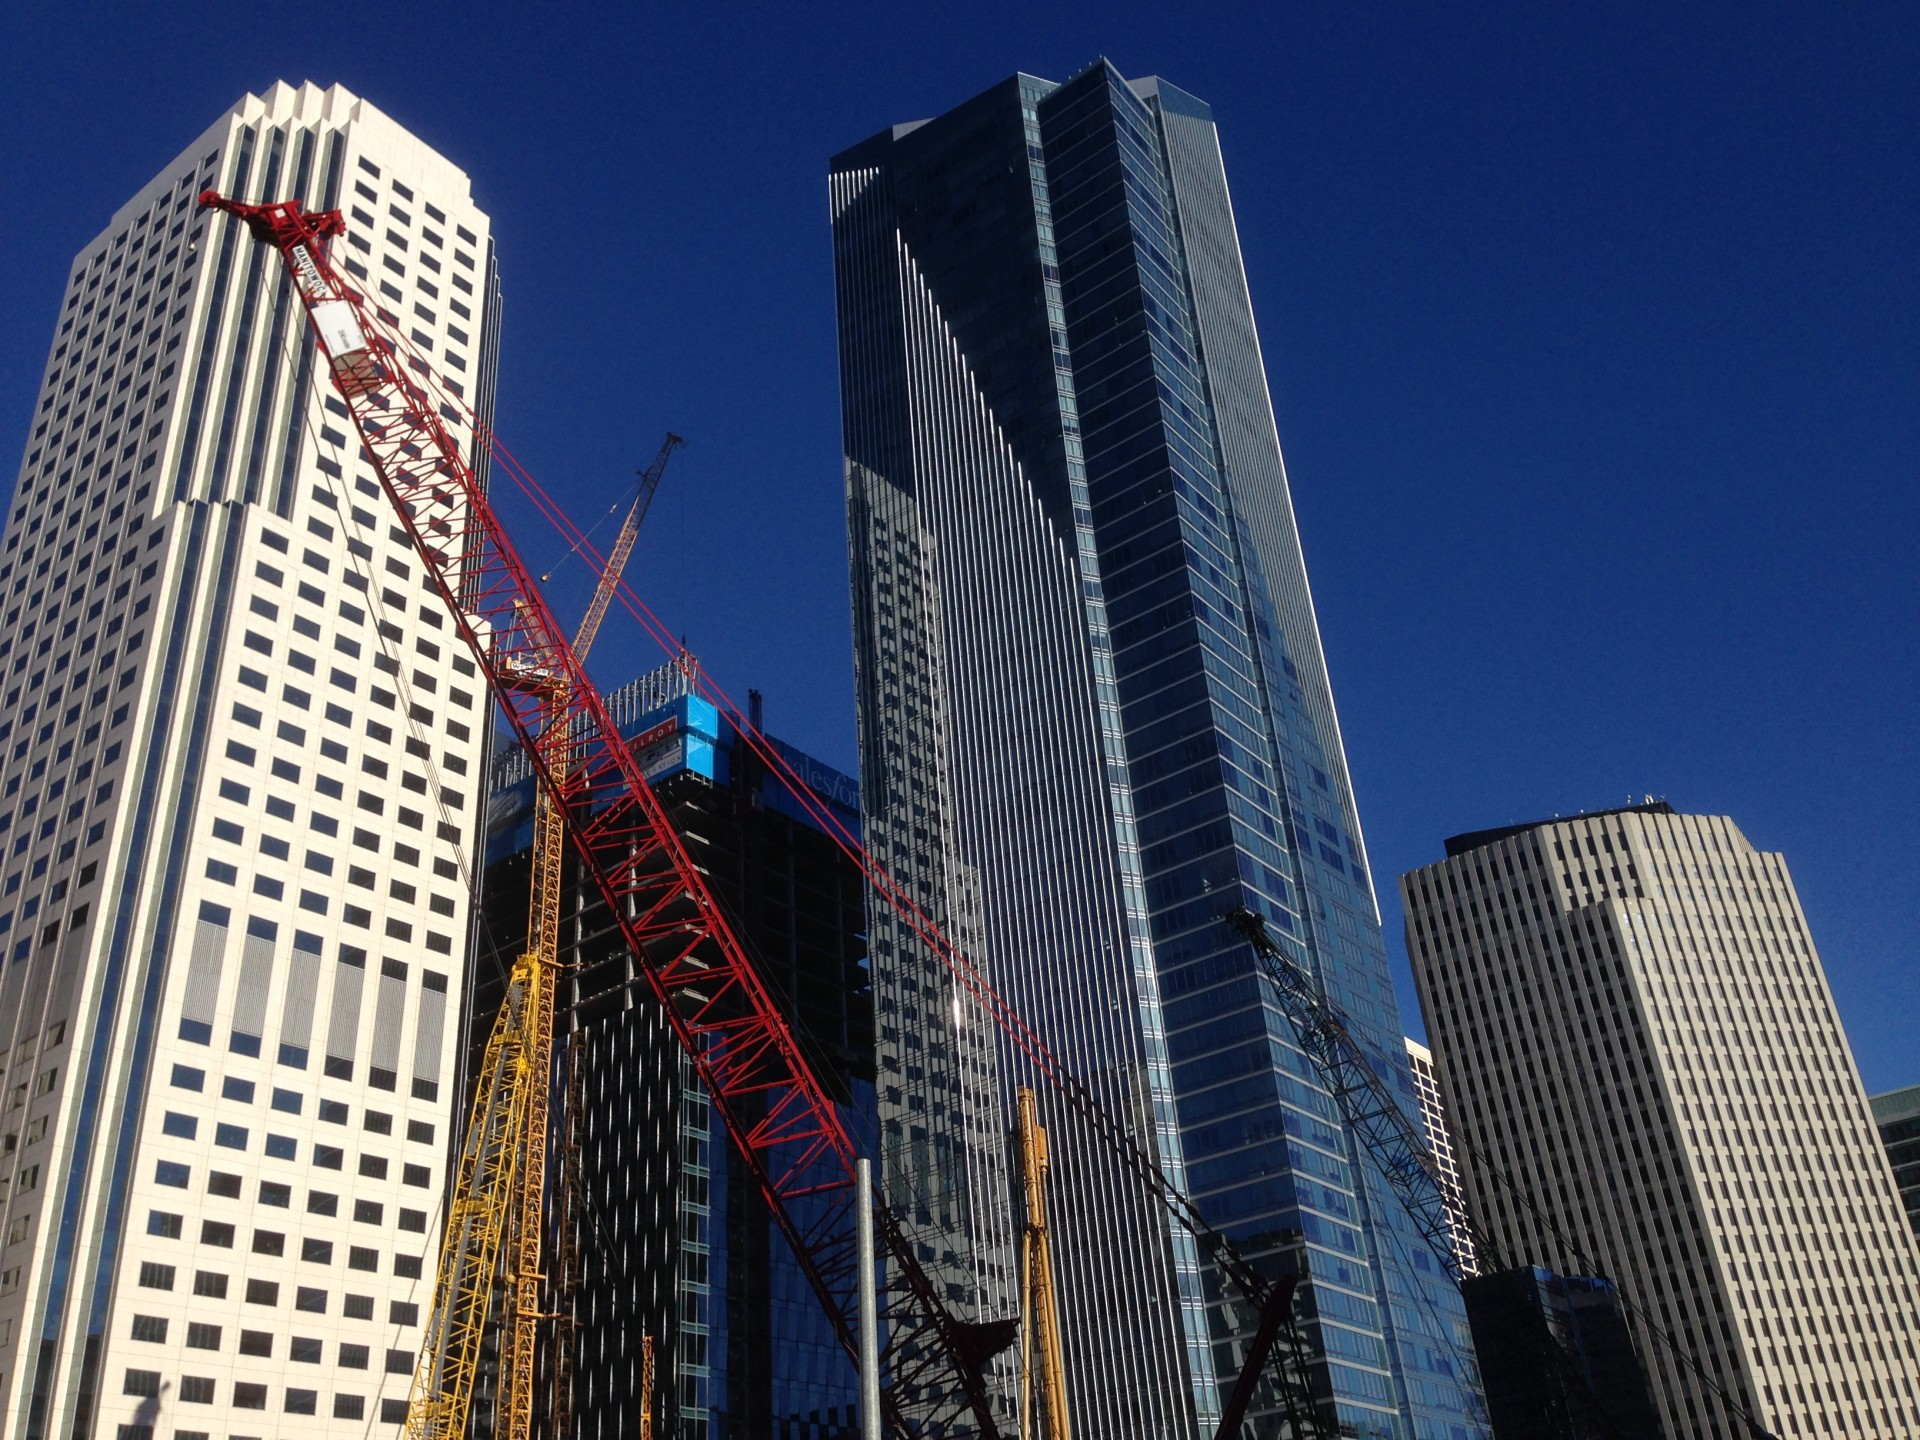 Construction cranes and gleaming new buildings reflect the changing face of San Francisco.